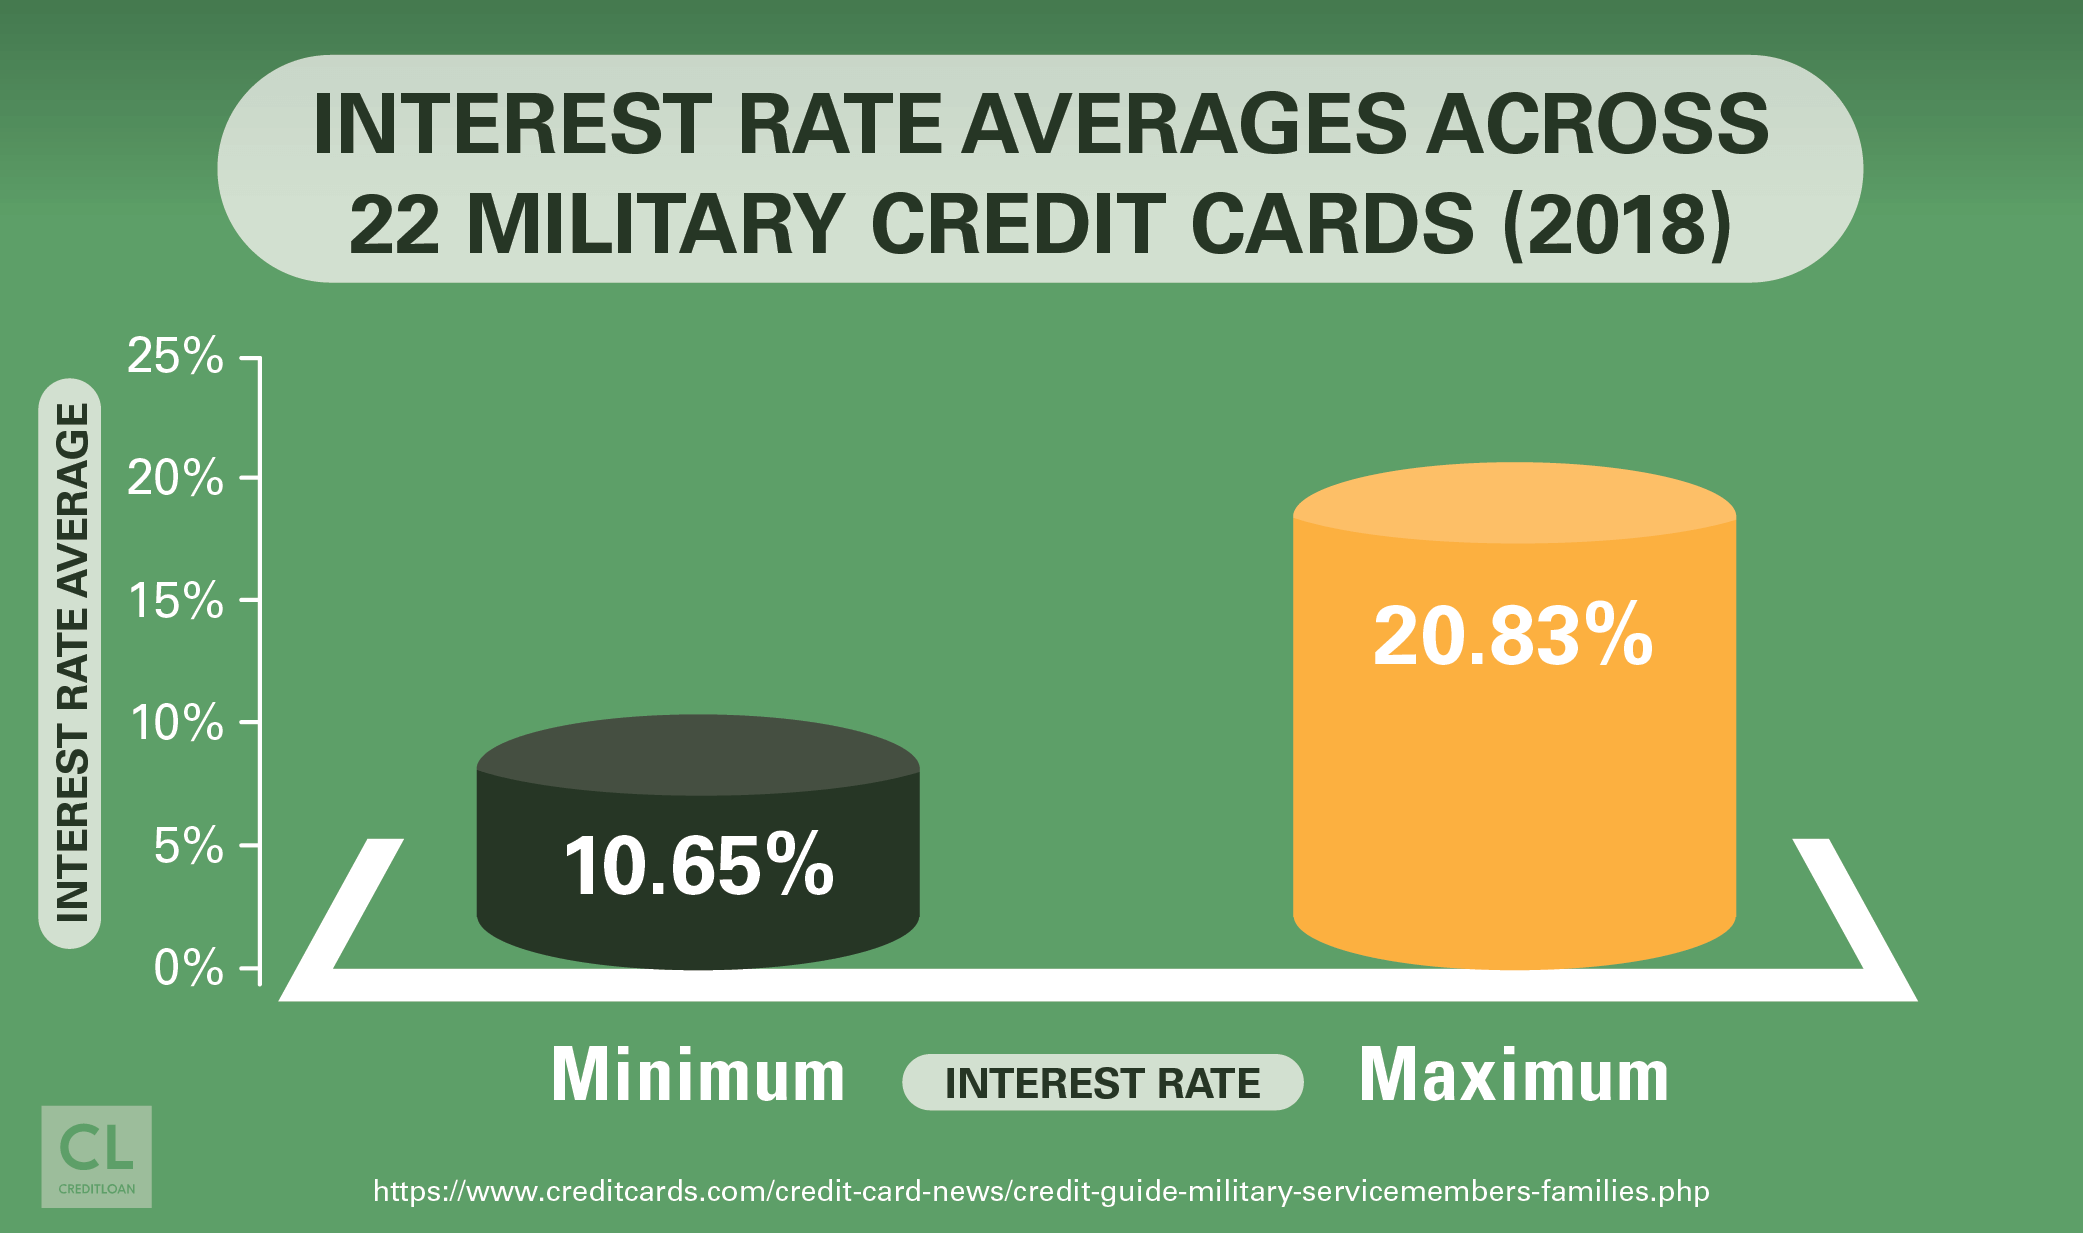 Interest Rate Averages Across 22 Military Credit Cards 2018